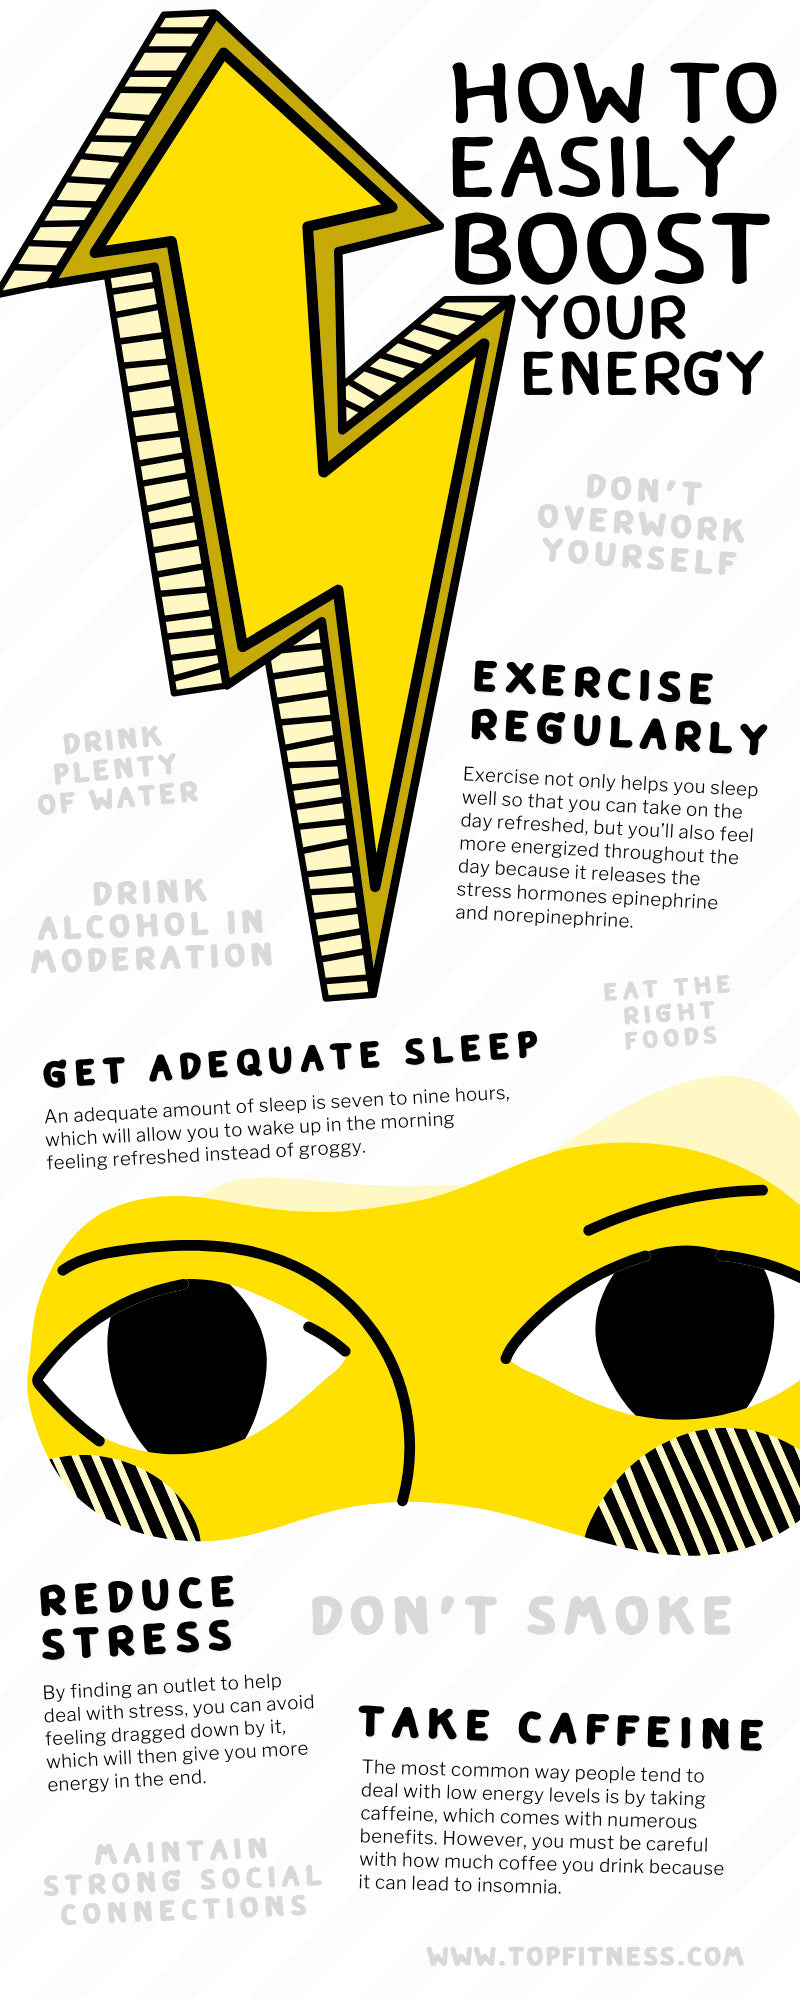 How To Easily Boost Your Energy